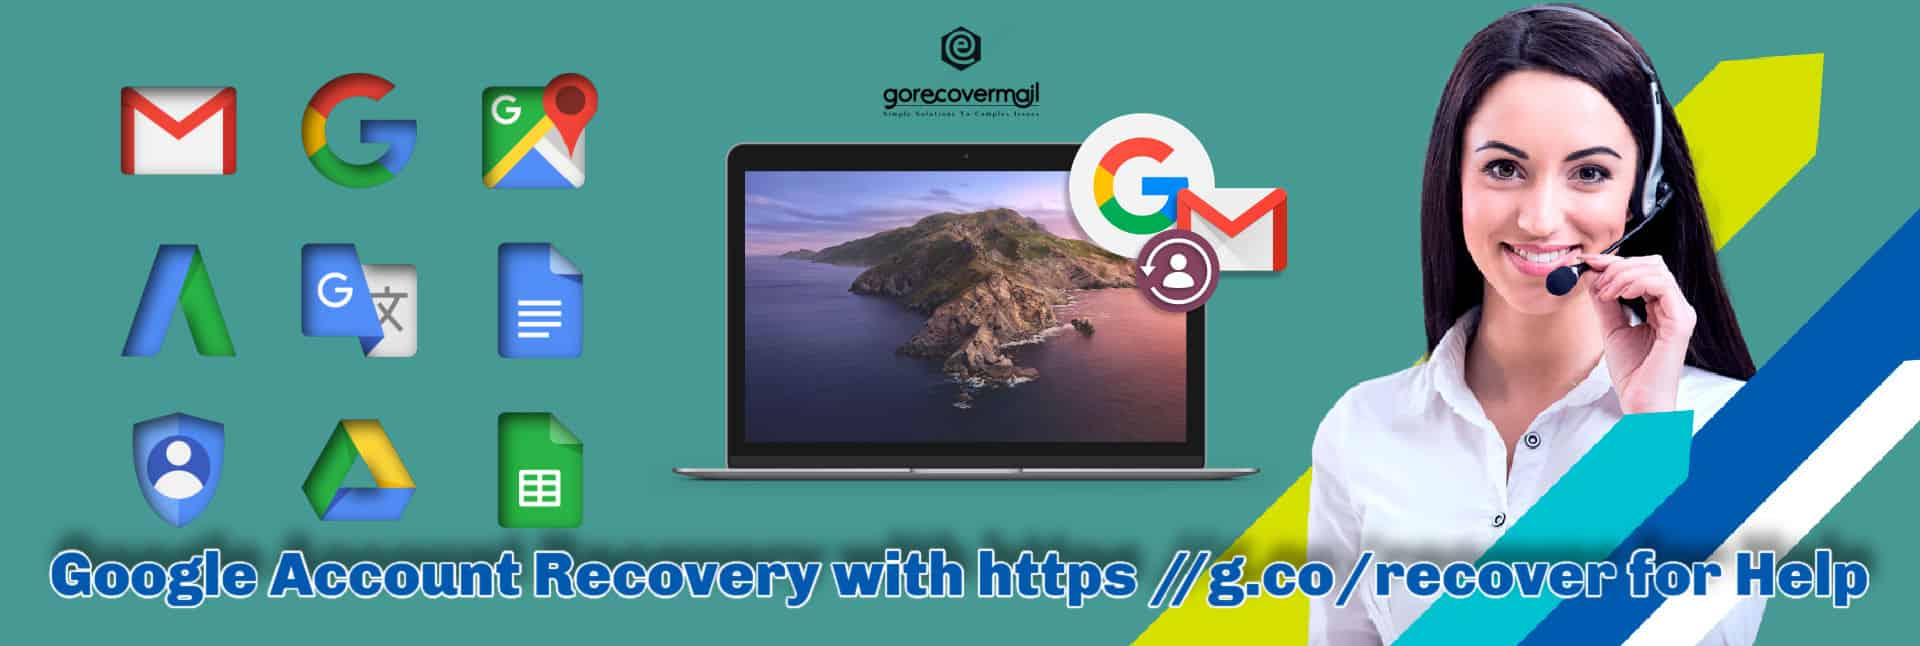 Toll-Free Number - 1 (888) 718-0745 | Google Account Recovery